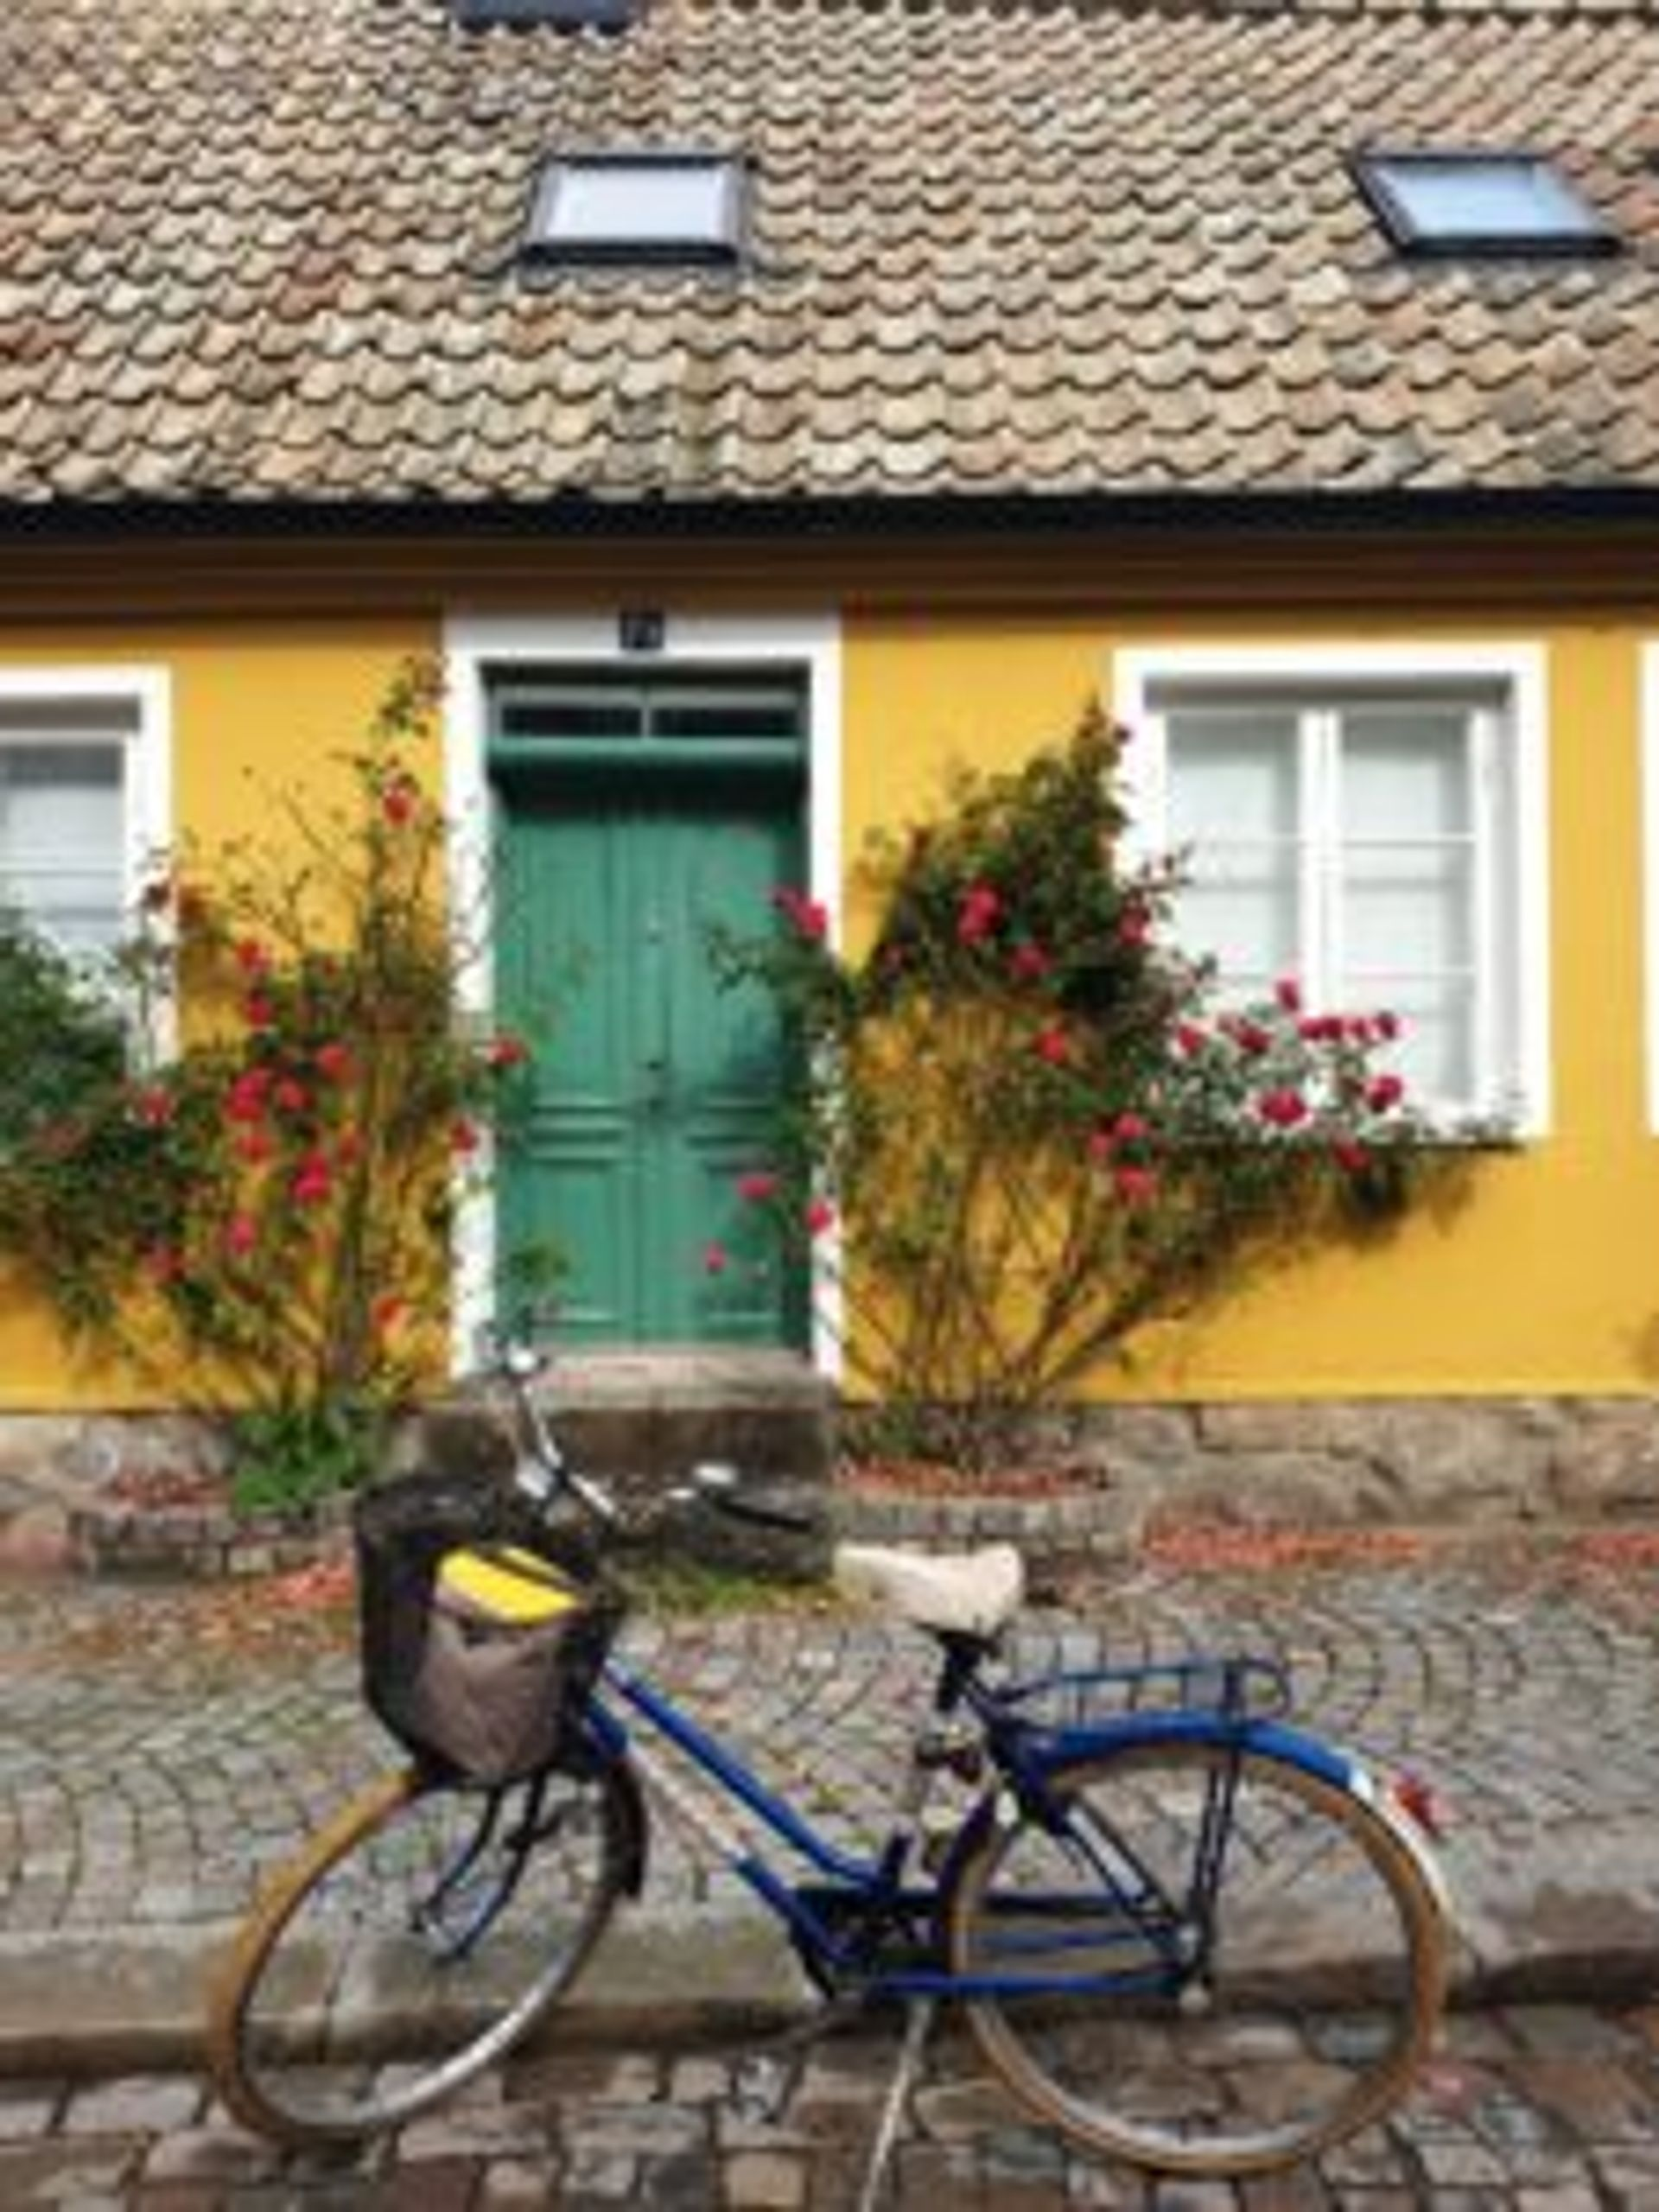 A blue bicycle is parked on a cobbled steet outside a small, yellow house.